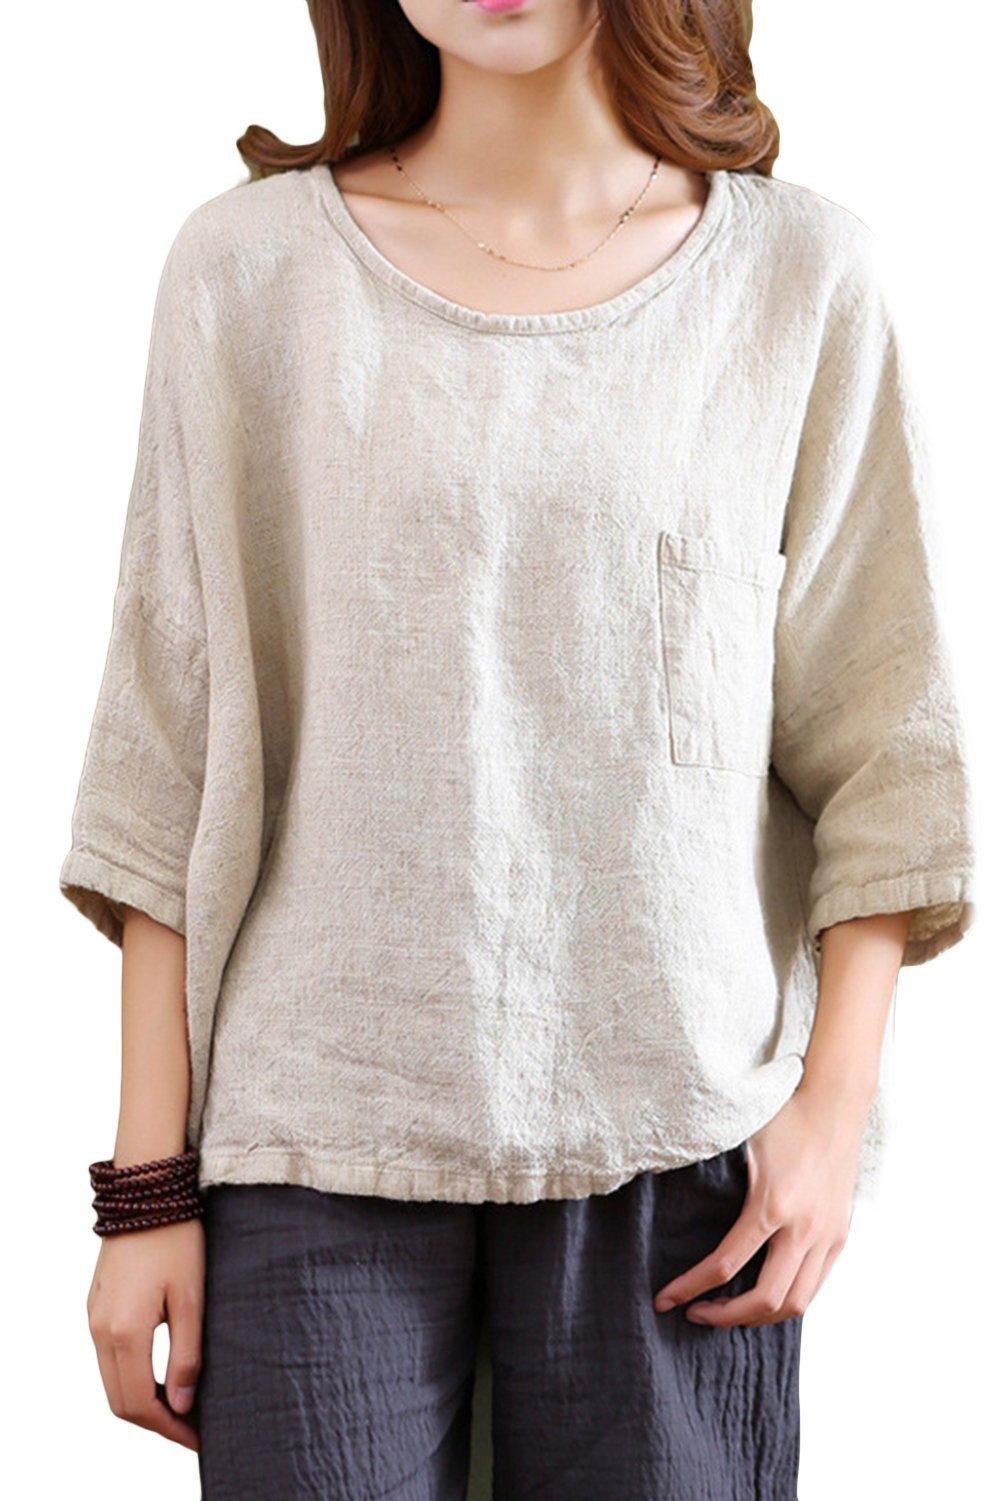 Asher Women's Essential Casual Loose Solid Cotton Linen Tops Blouses (One Size, Beige)